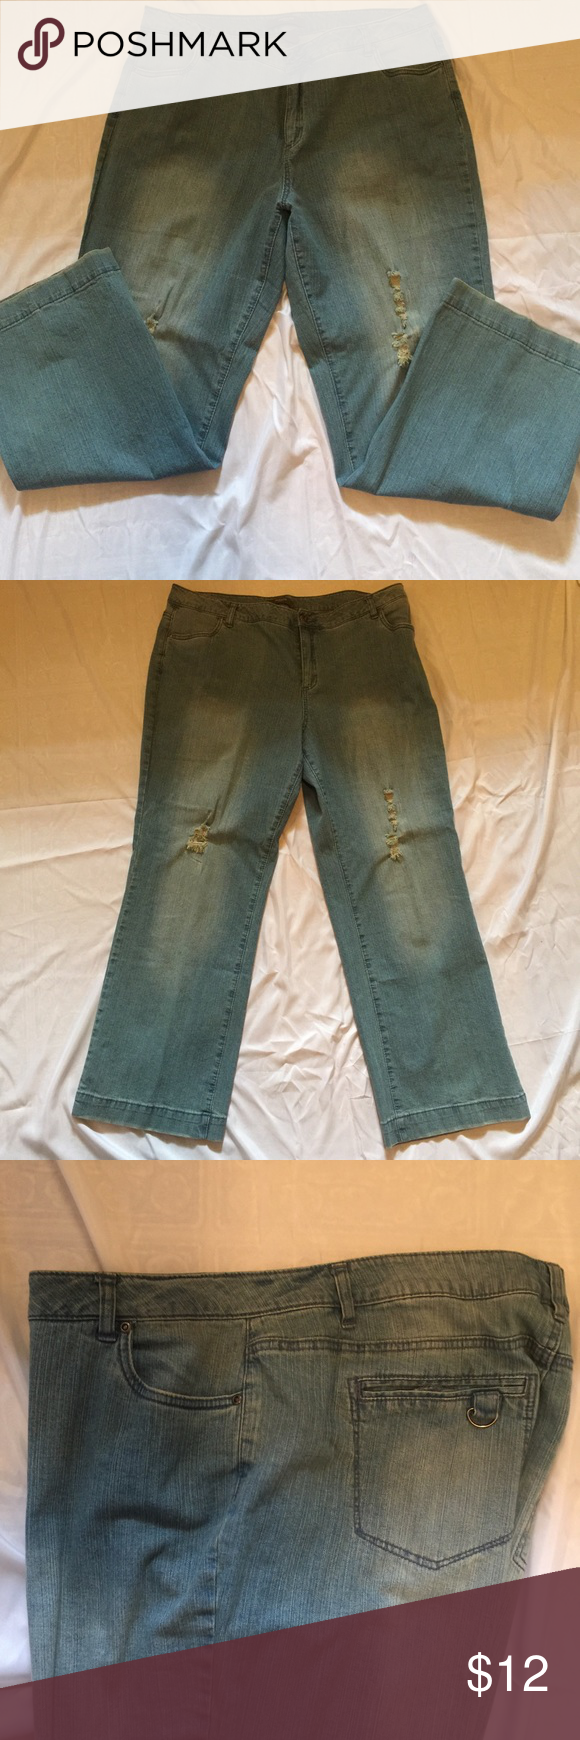 ✔️Plus Size Distressed Redoute Creation Jeans ✔️Like New Preowned Jeans✔️Plus Size ✔️Never worn these jeans✔️Size 18W✔️Never worn - I bought two pair of these jeans (18w and 20w) I only wore the size 20W✔️Brand - Redoute Creation✔️Distressed look Redoute Creation Jeans